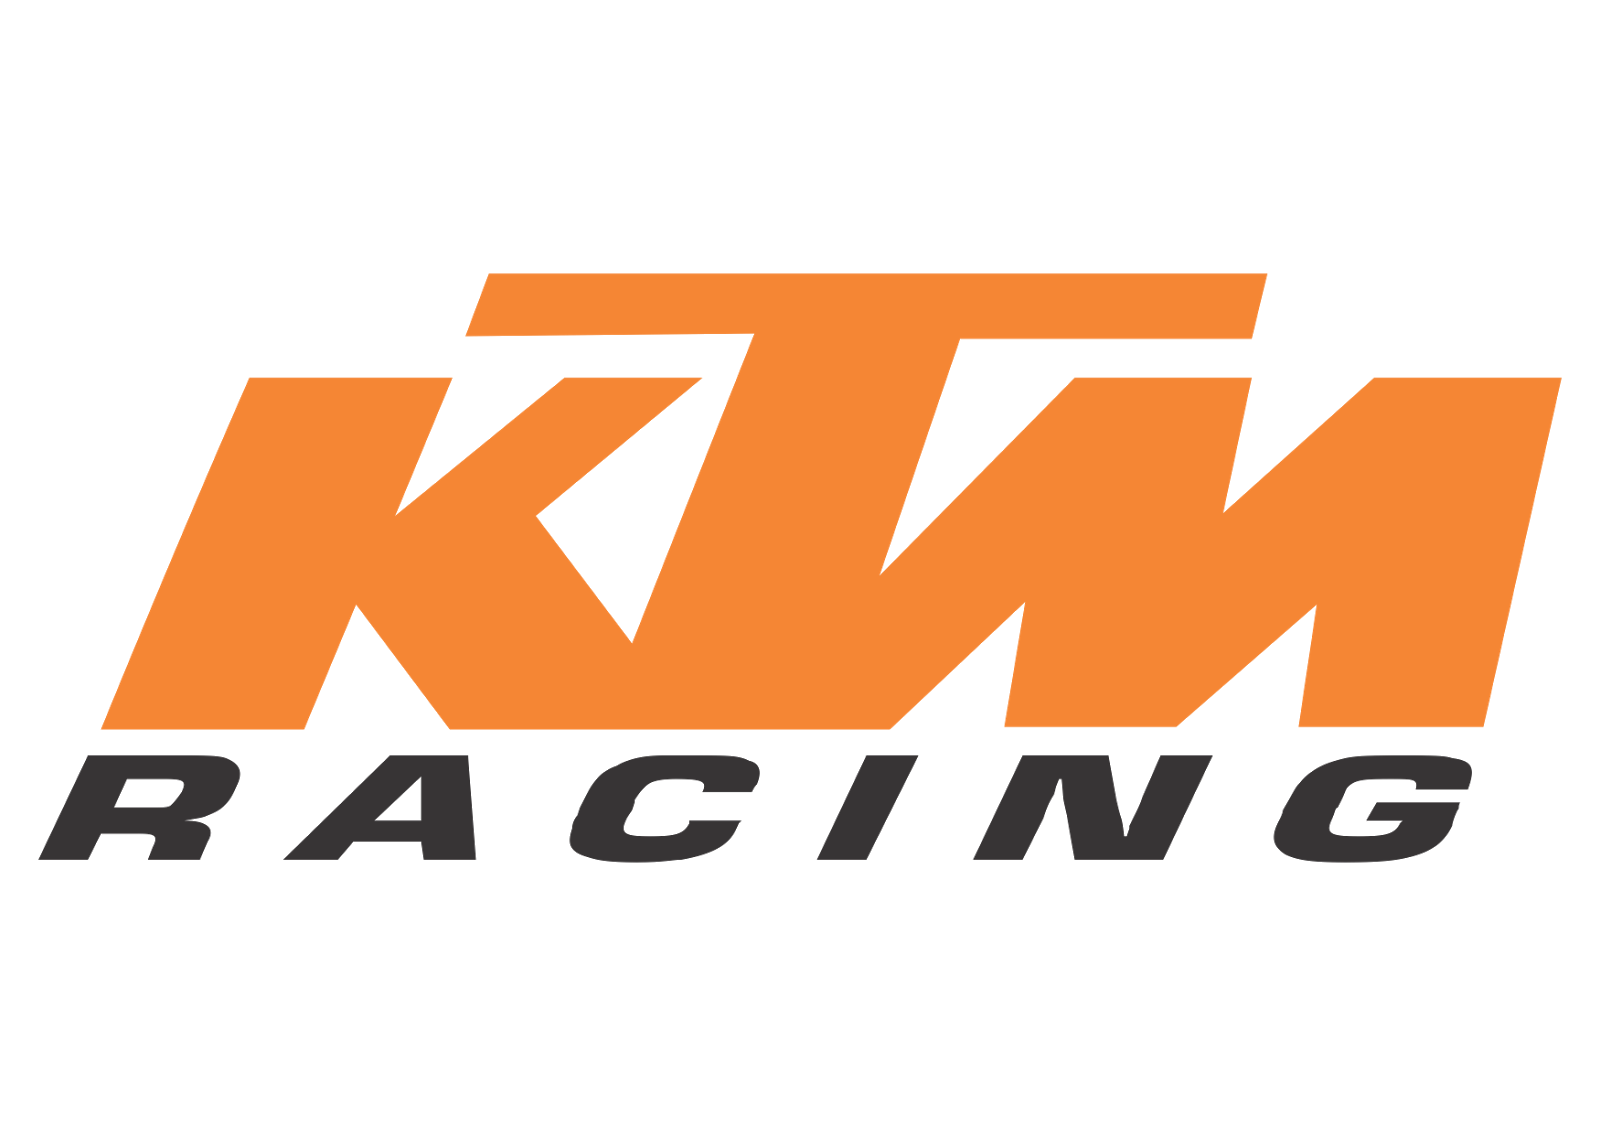 1600x1136 Ktm Racing Logo Vector Vector Logo Download Logos